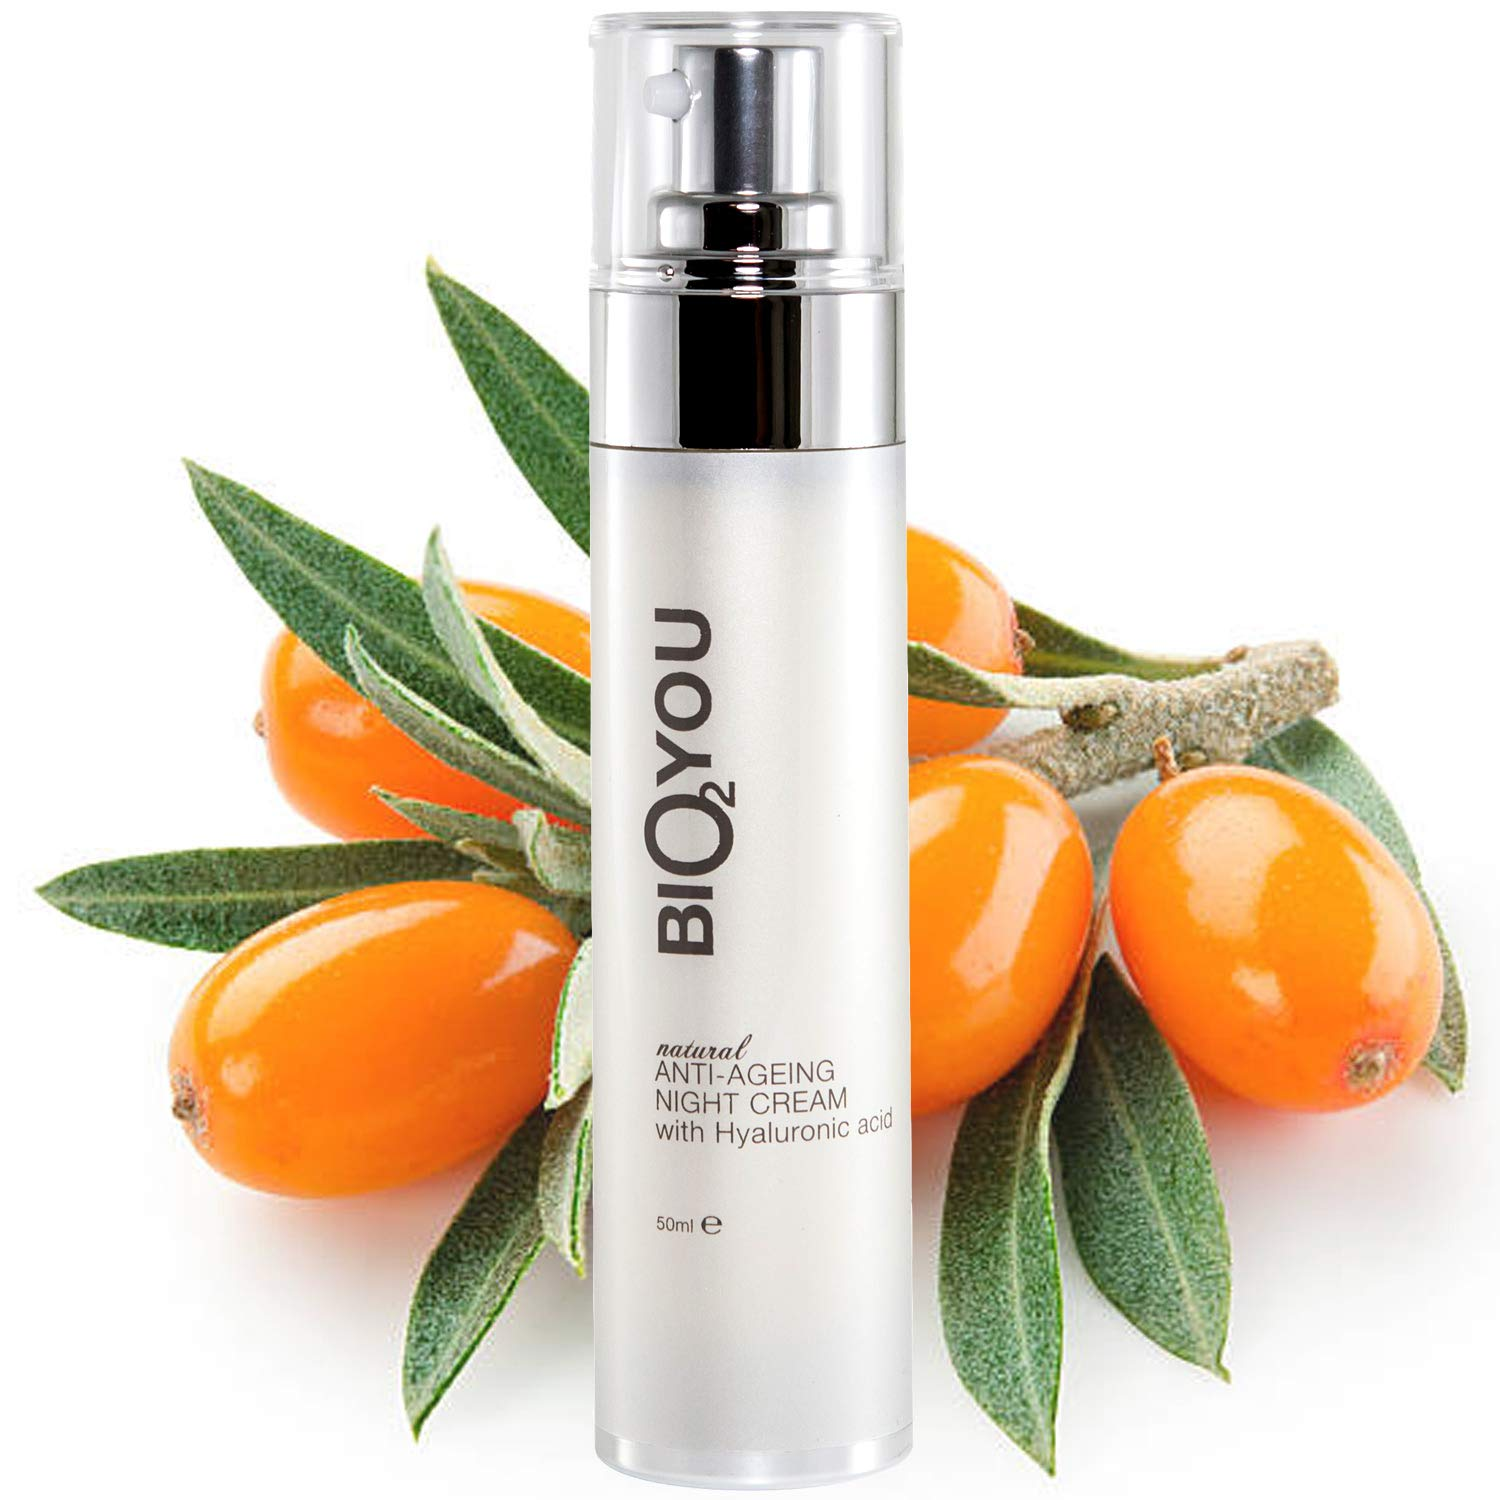 Natural Anti-Ageing Night Cream With Hyaluronic Acid Aloe Vera Vitamin E Rosehip Ginseng and Sea buckthorn oil Bio2You